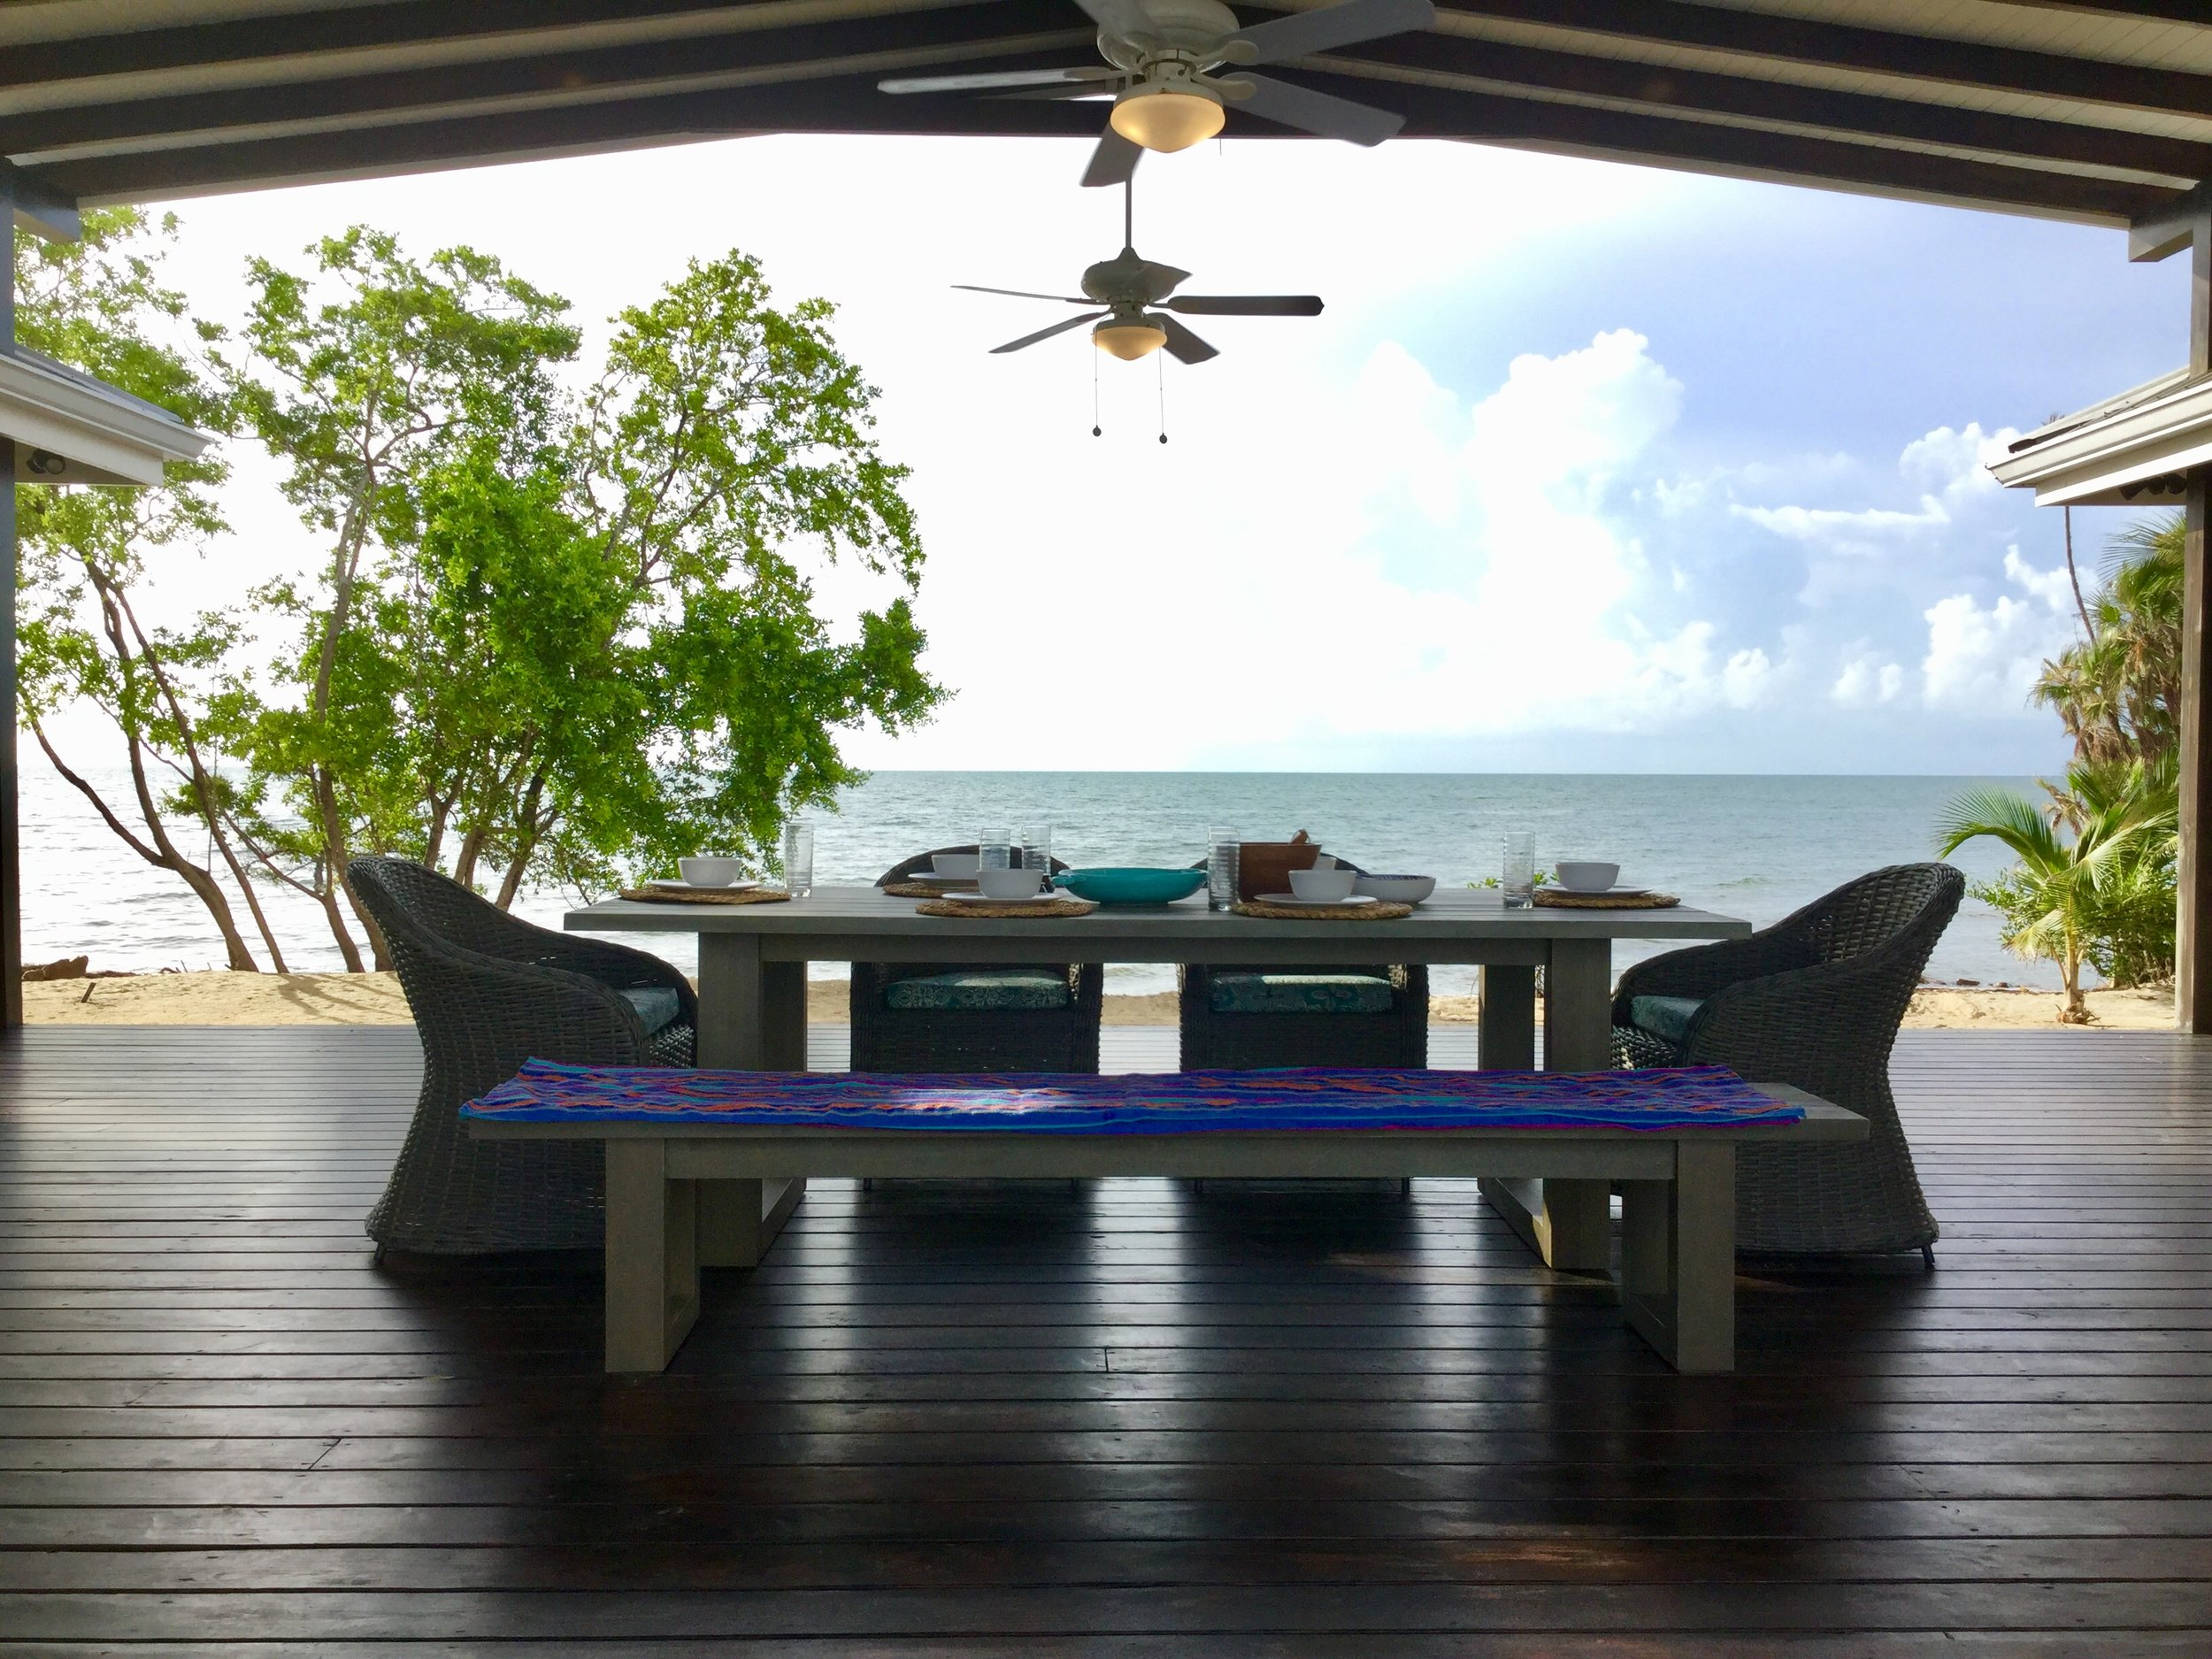 Enjoy our covered 600 Sq Ft indoor-outdoor living space…Perfect for breakfast brunches and cocktails with friends in the afternoon….tropical beach and sunset lagoon views are included.